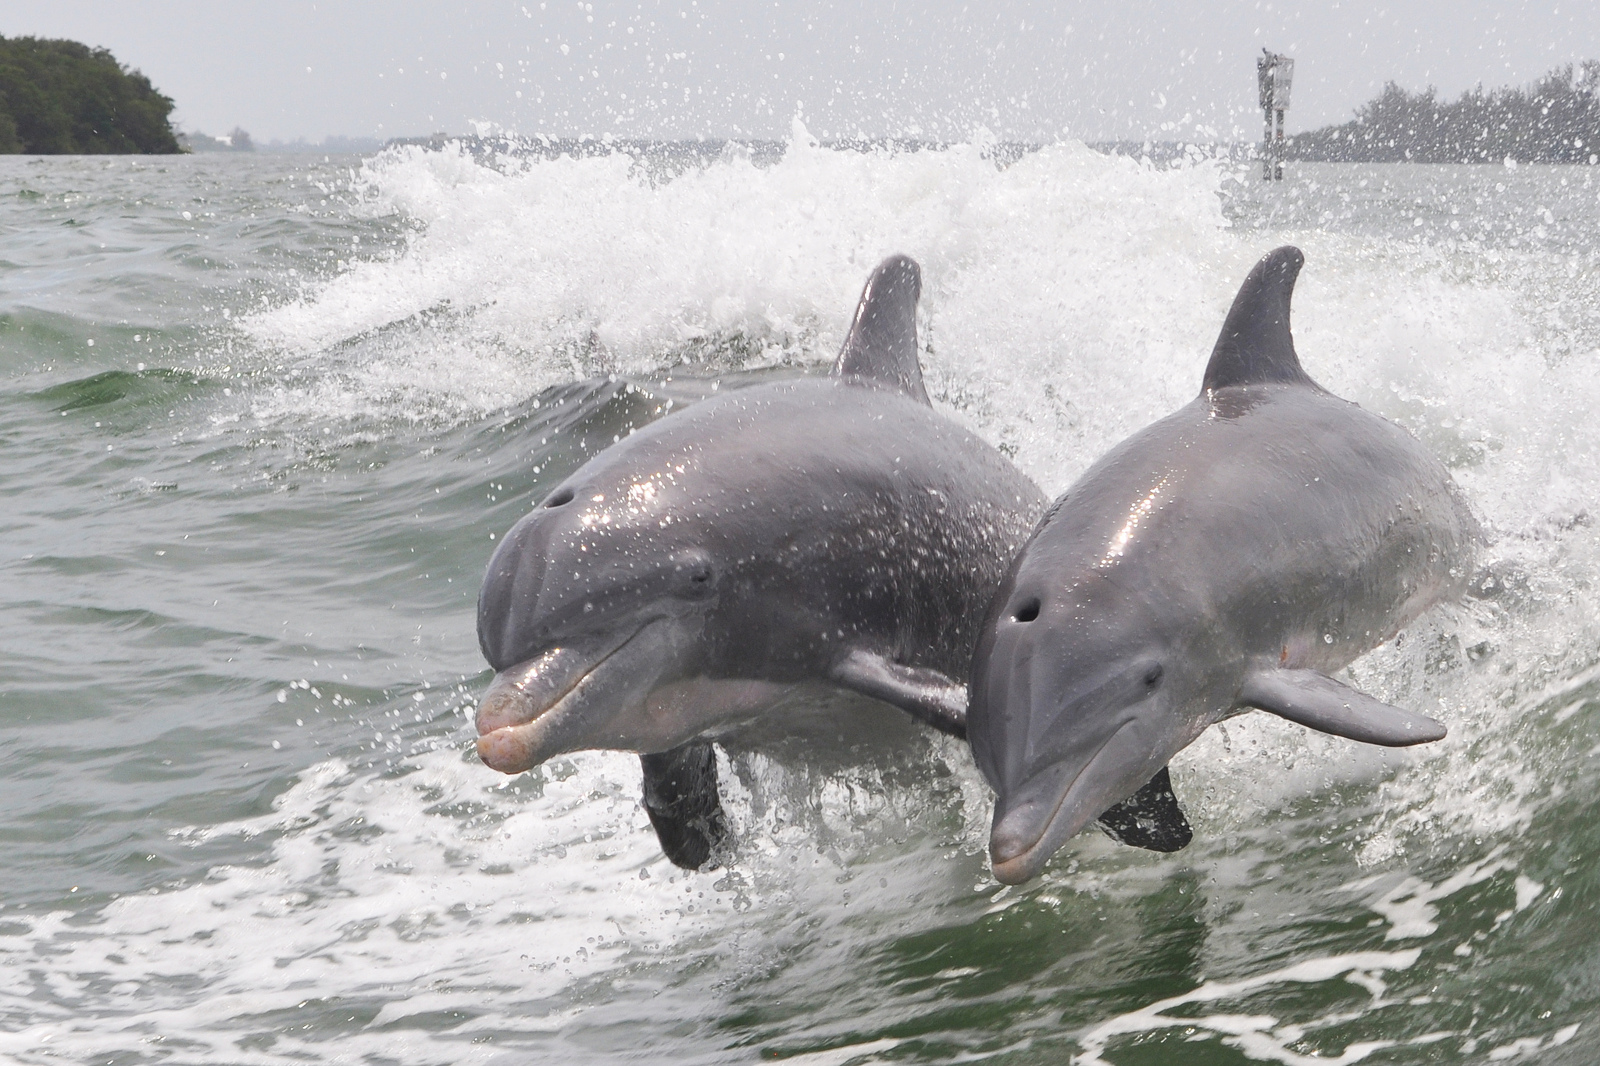 Is There Hope for Taiji's Dolphins? What We've Learned From This Year in The Cove